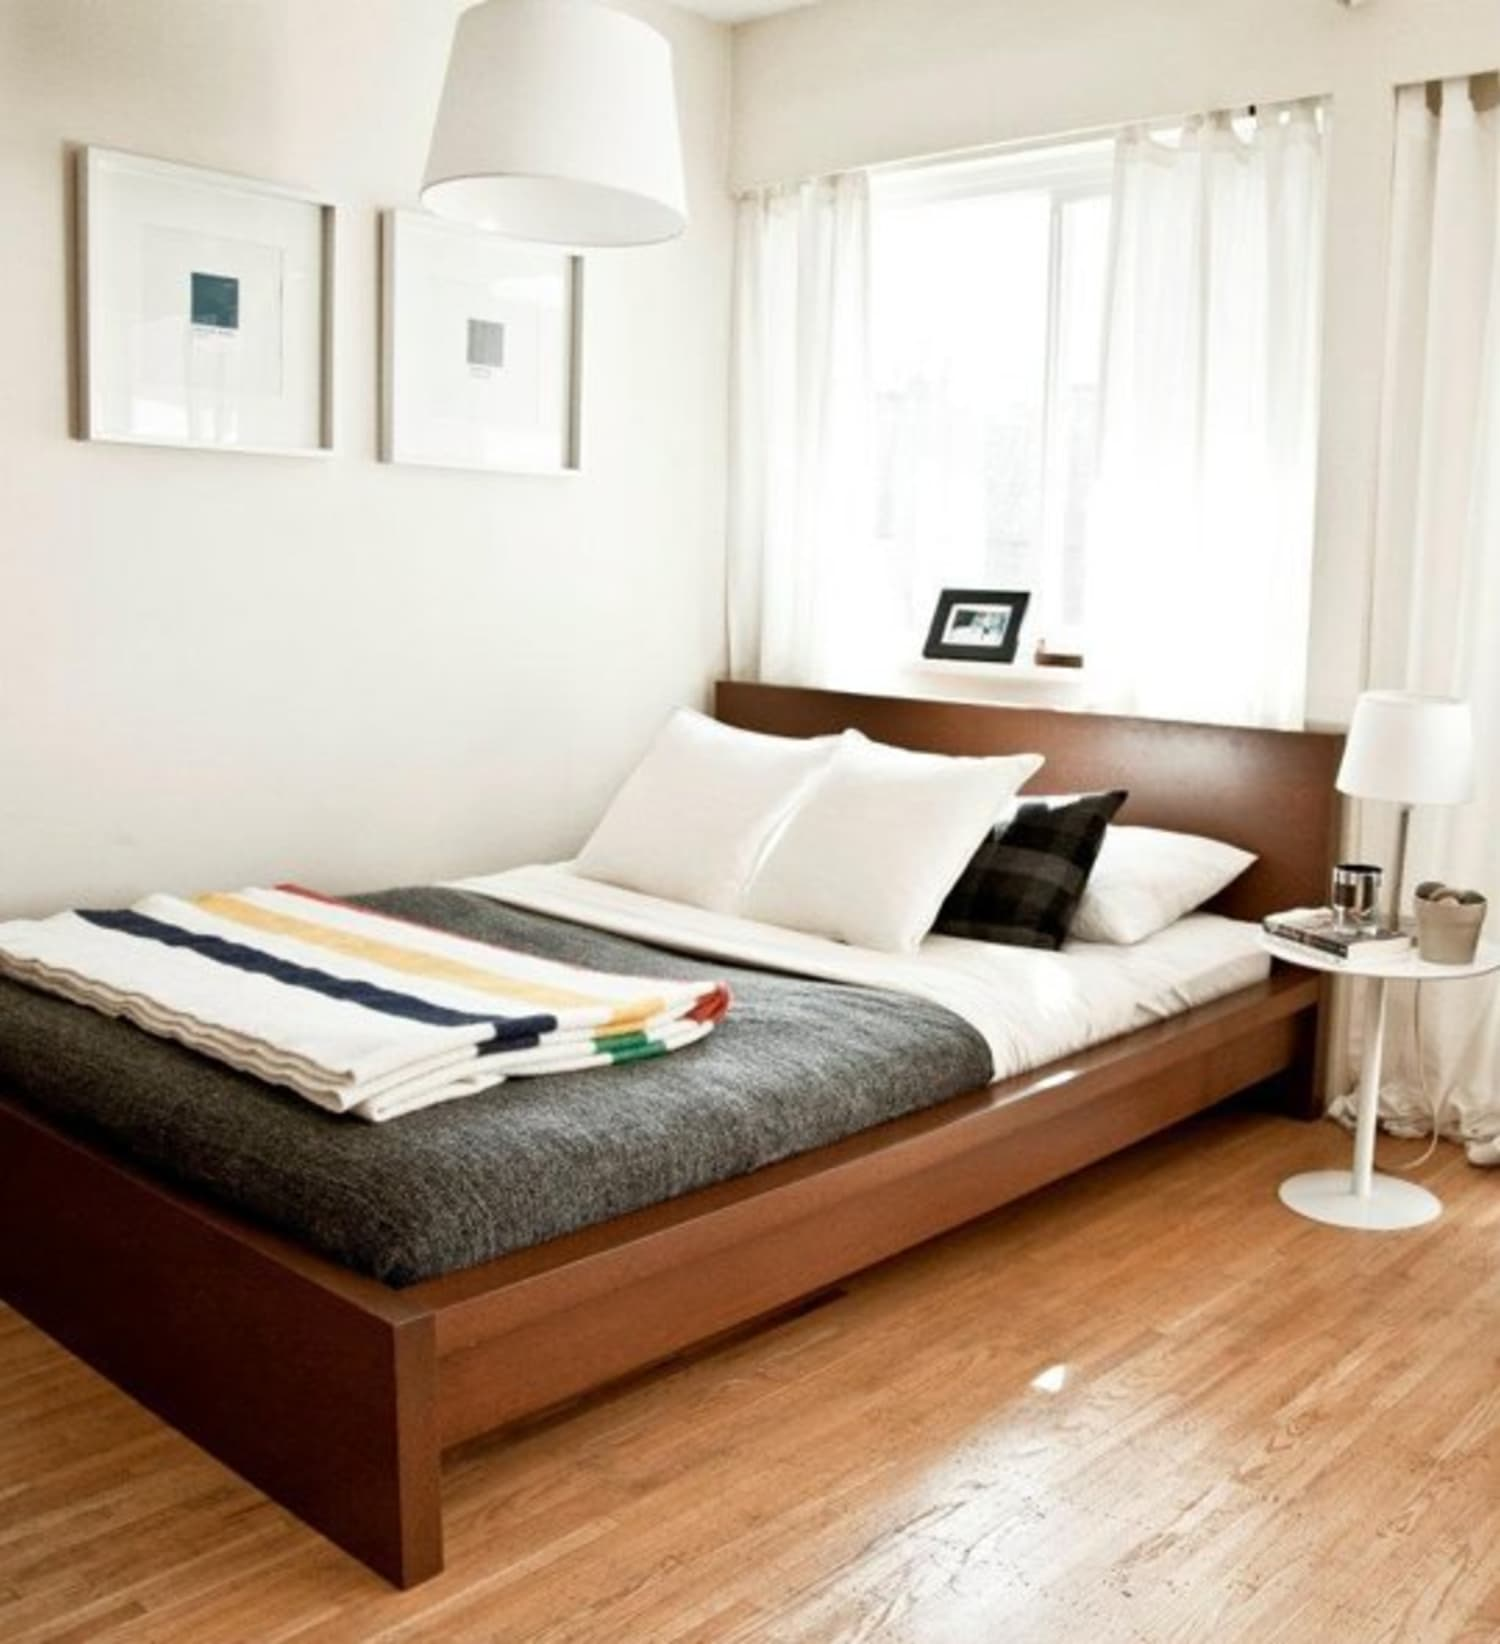 Studio Apartments In Bay Area: Small Space Lessons: Floorplan & Solutions From Geoff's